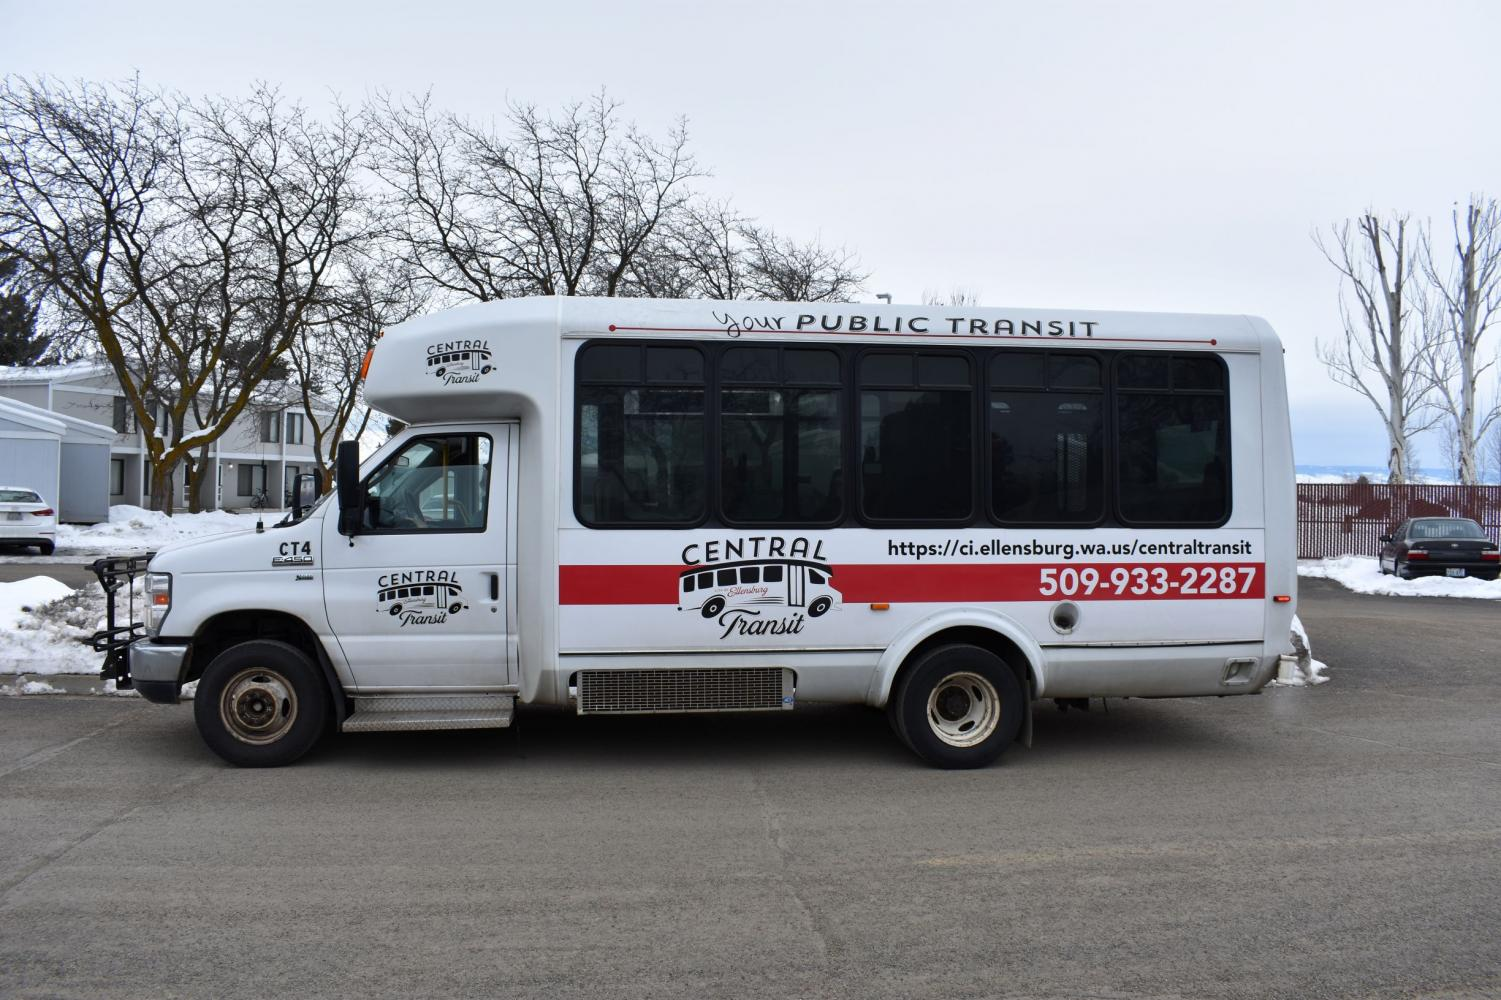 The Central Transit buses have been offering a free service to CWU students for the last nine years. The service became free to all Ellensburg residents in 2016. The transit system has been steadily growing in popularity ever since.